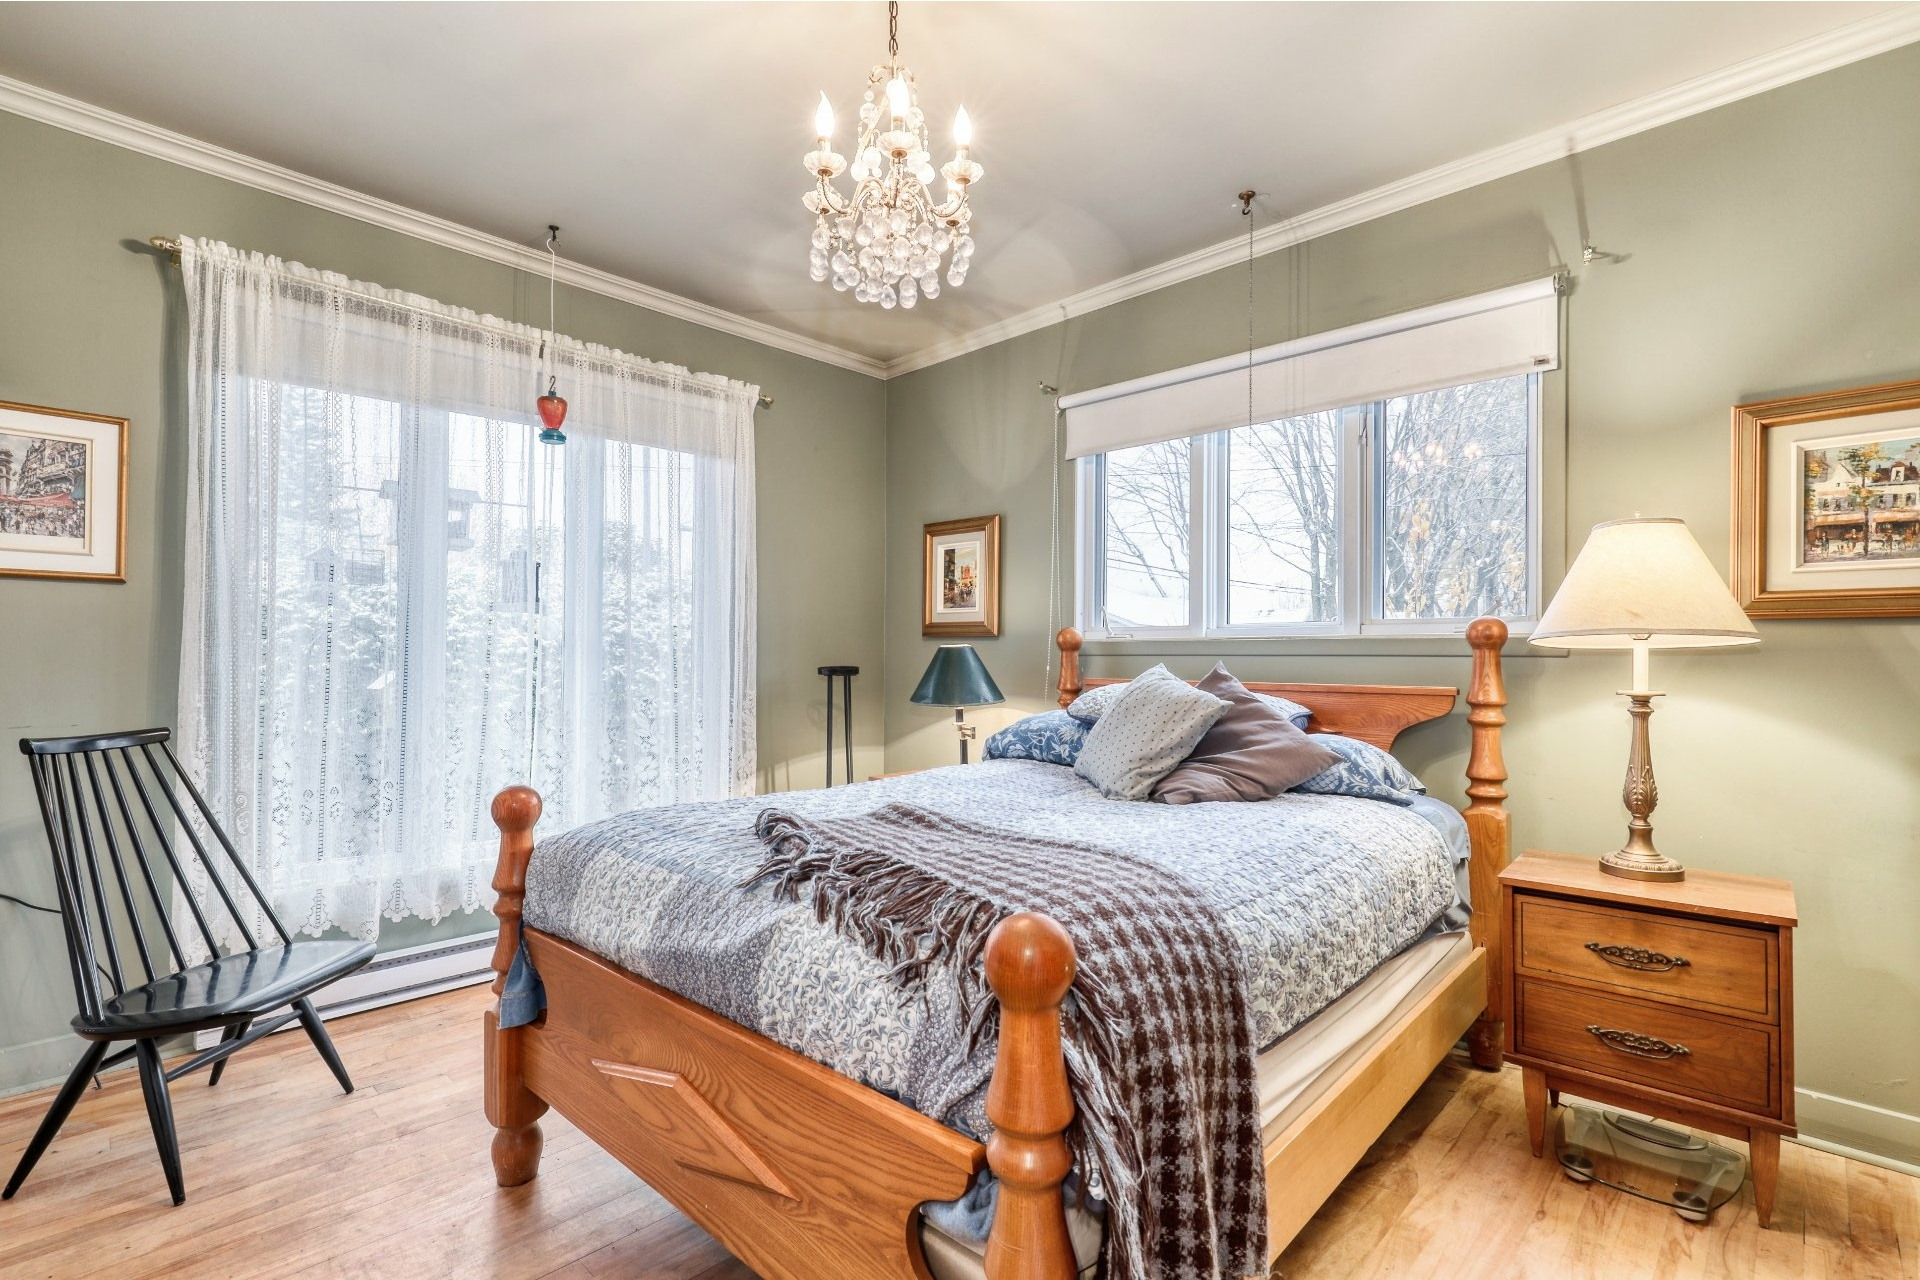 image 6 - House For sale Joliette - 10 rooms